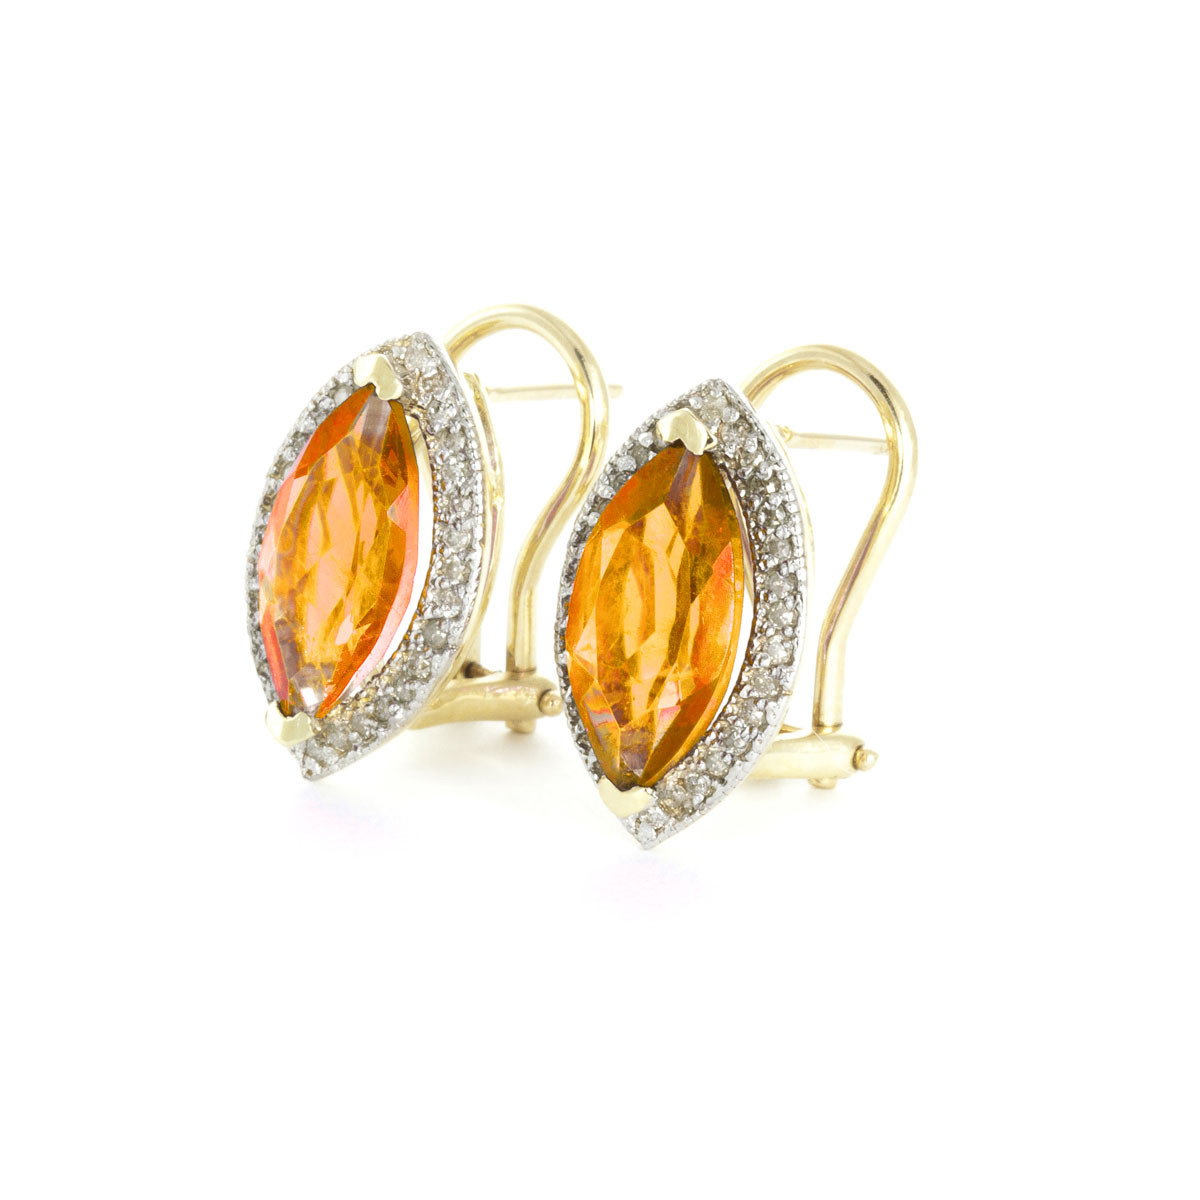 Citrine French Clip Halo Earrings 3.6 ctw in 9ct Gold